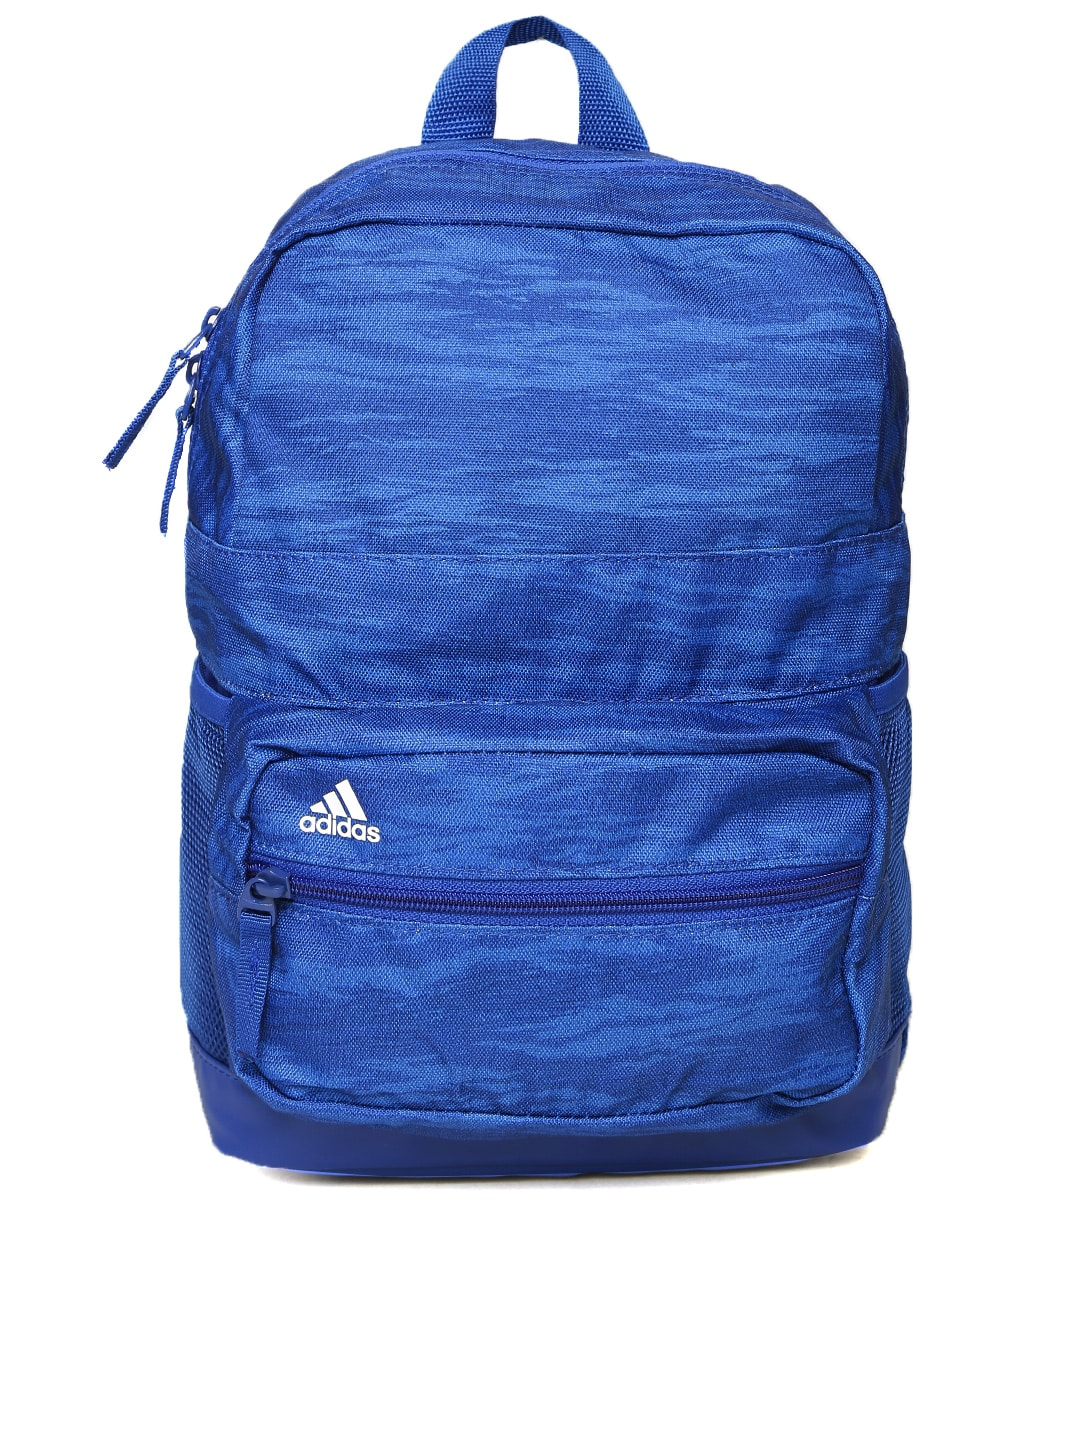 f6927c73858a Buy adidas blue backpack   OFF68% Discounted